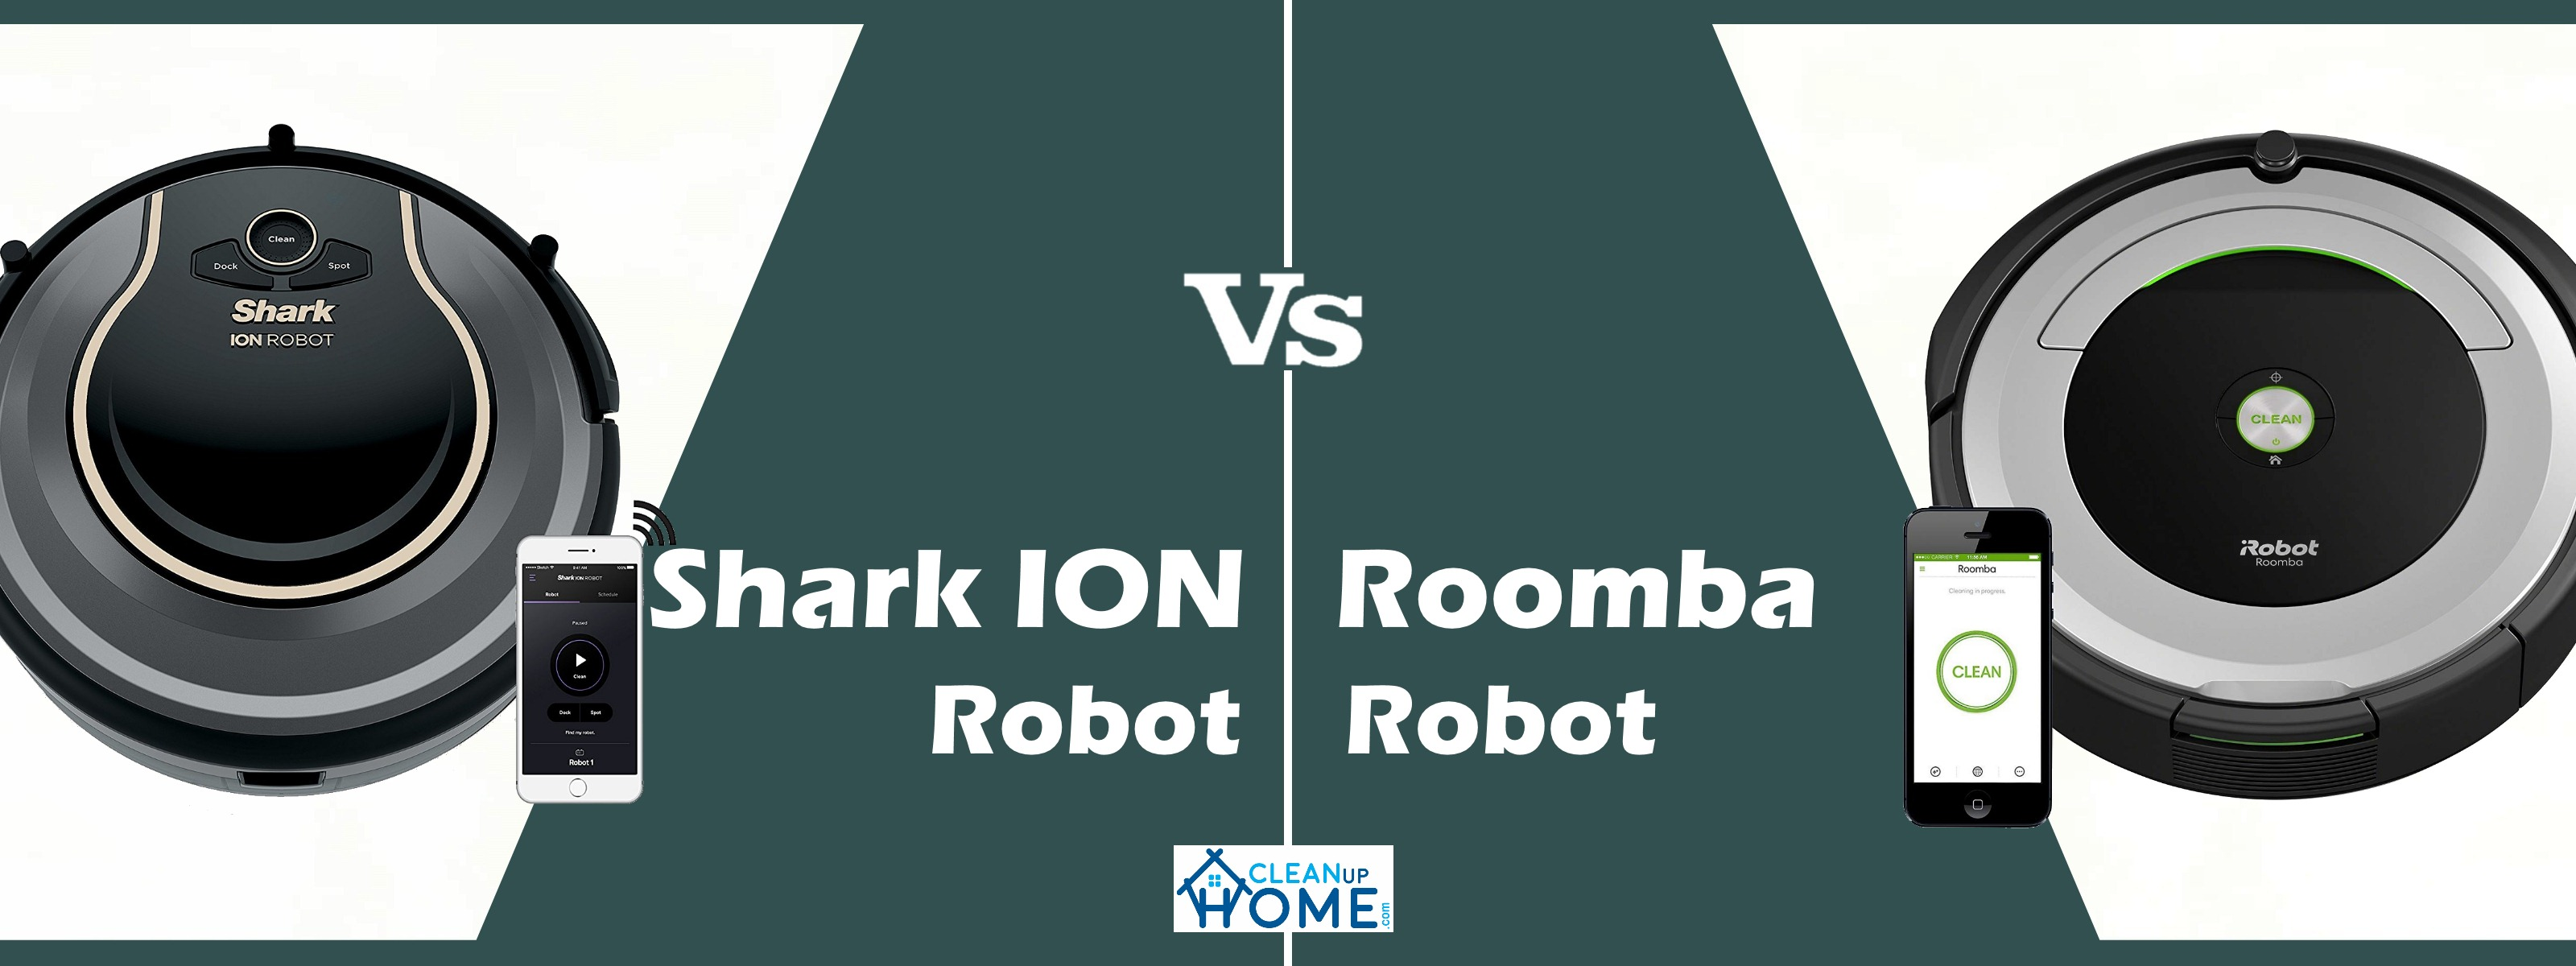 Shark ION Robot Vs Roomba